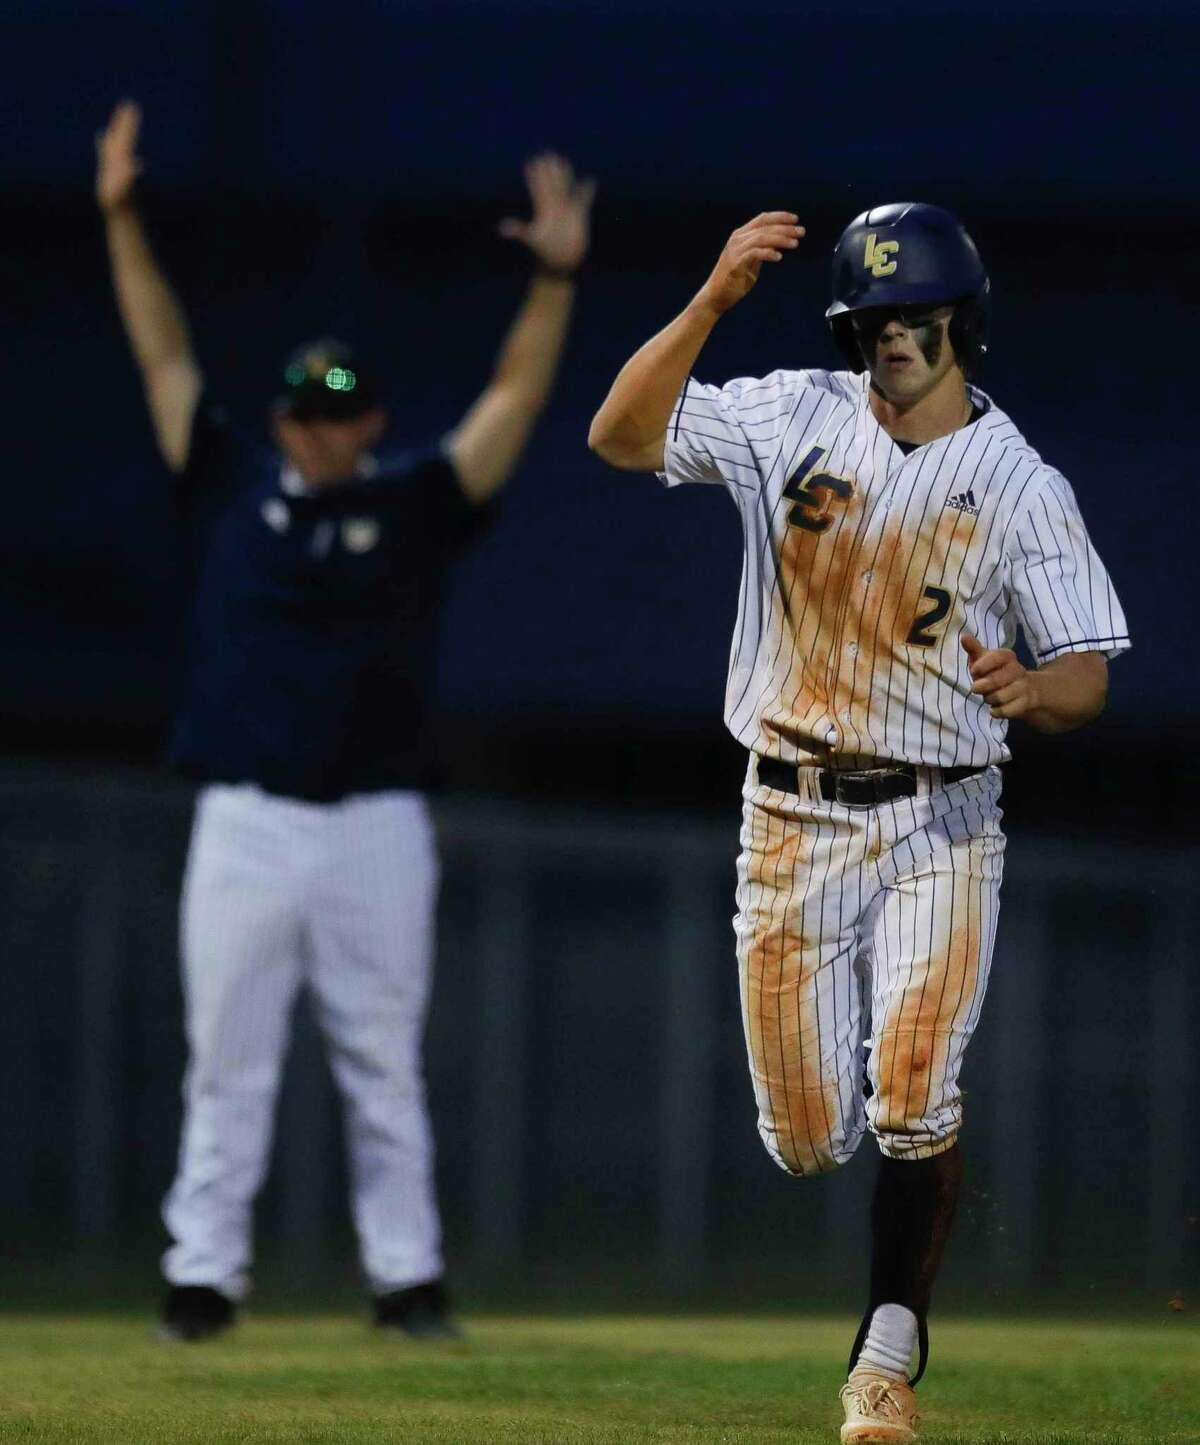 John Spikerman #2 of Lake Creek scores from second base after a thowing error during the fourth inning of a District 20-5A high school baseball game at Lake Creek High School, Tuesday, April 27, 2021, in Montgomery.